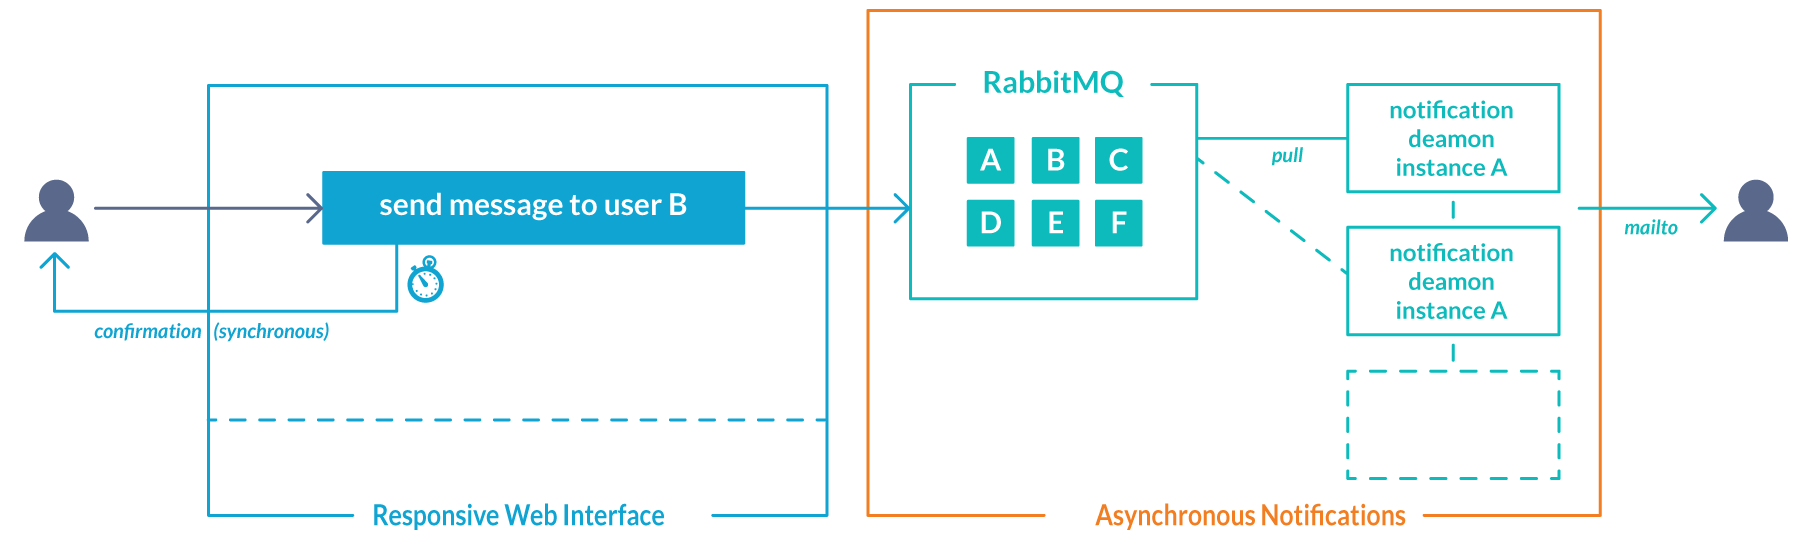 How-to use RabbitMQ in your Ruby applications | anynines blog